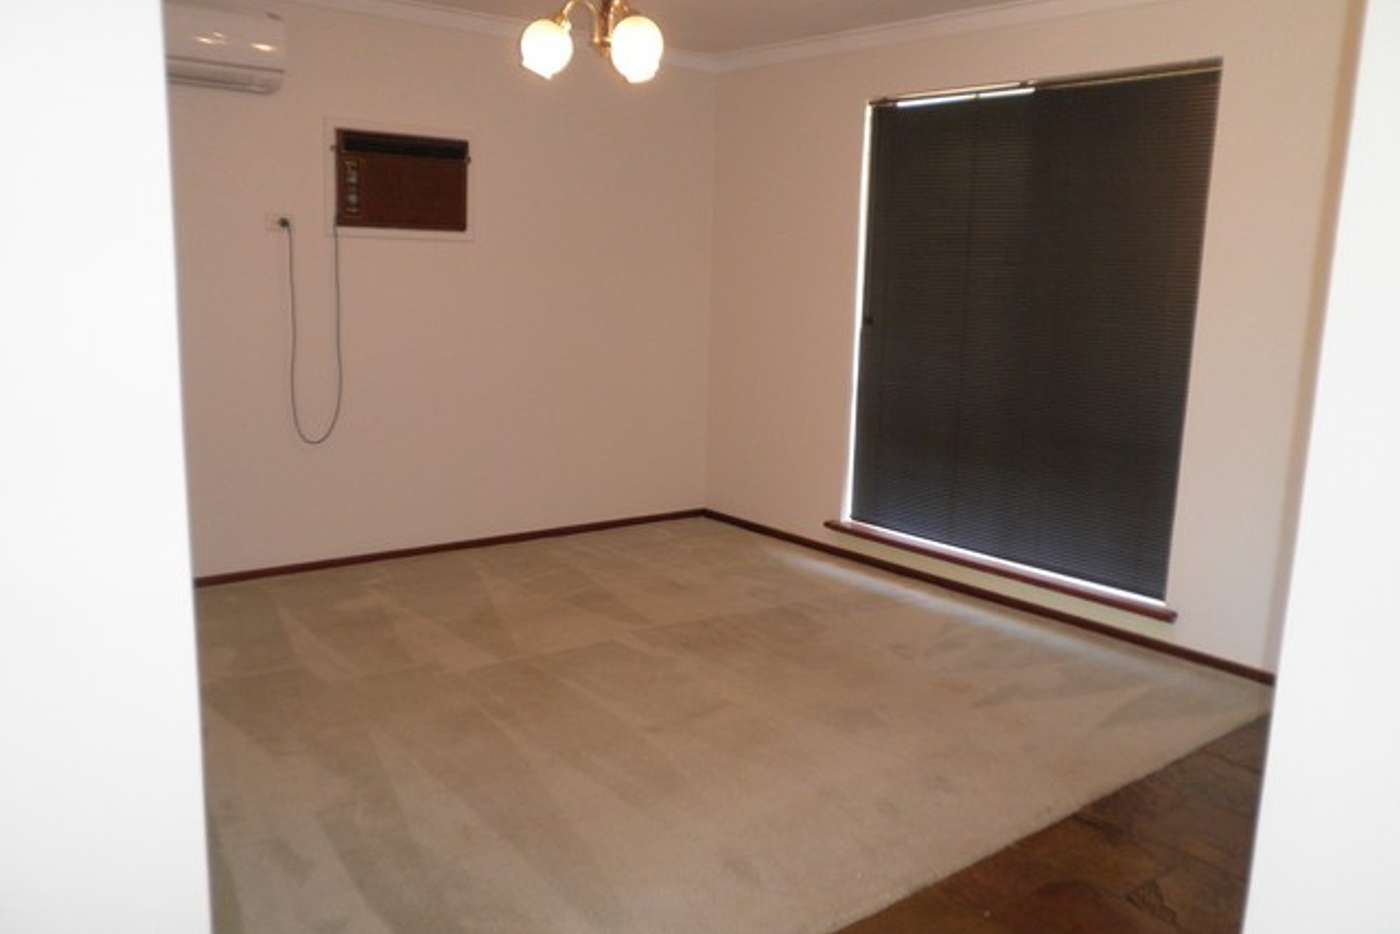 Sixth view of Homely villa listing, 2/13 Chich Place, Cannington WA 6107